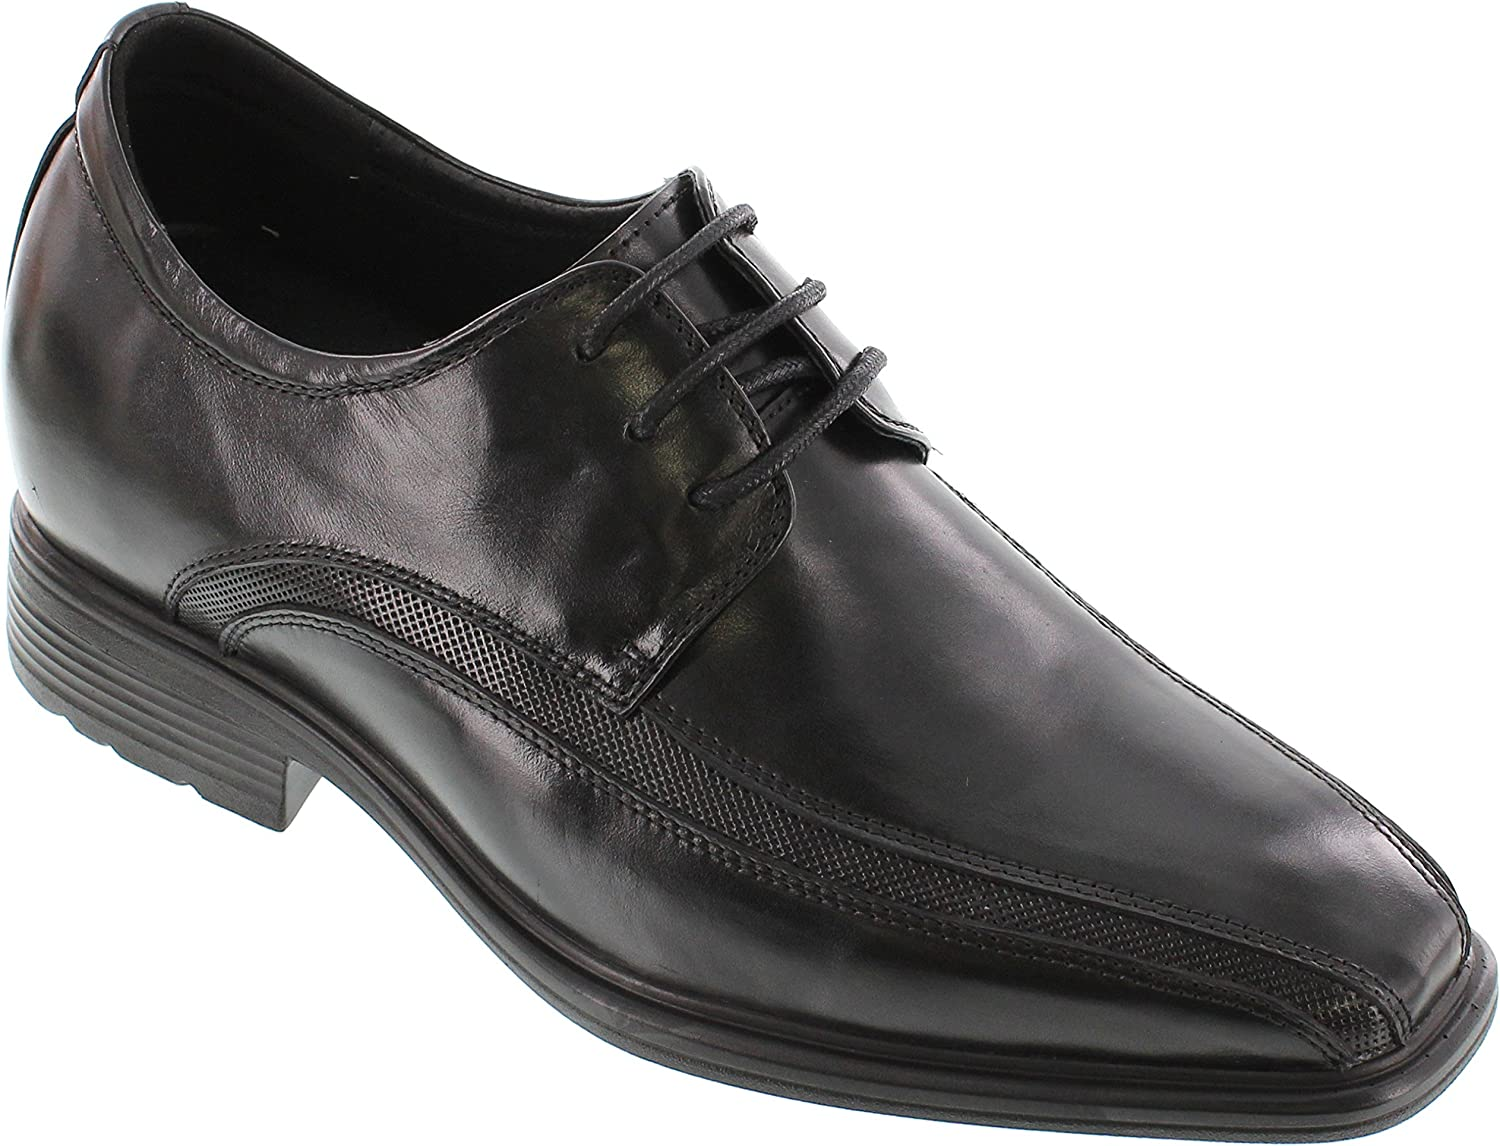 CALTO Men's Invisible Height Increasing Elevator Oxfords shoes - Black Leather Lace-up Super Lightweight Dress Derby - 3 Inches Taller - G60126